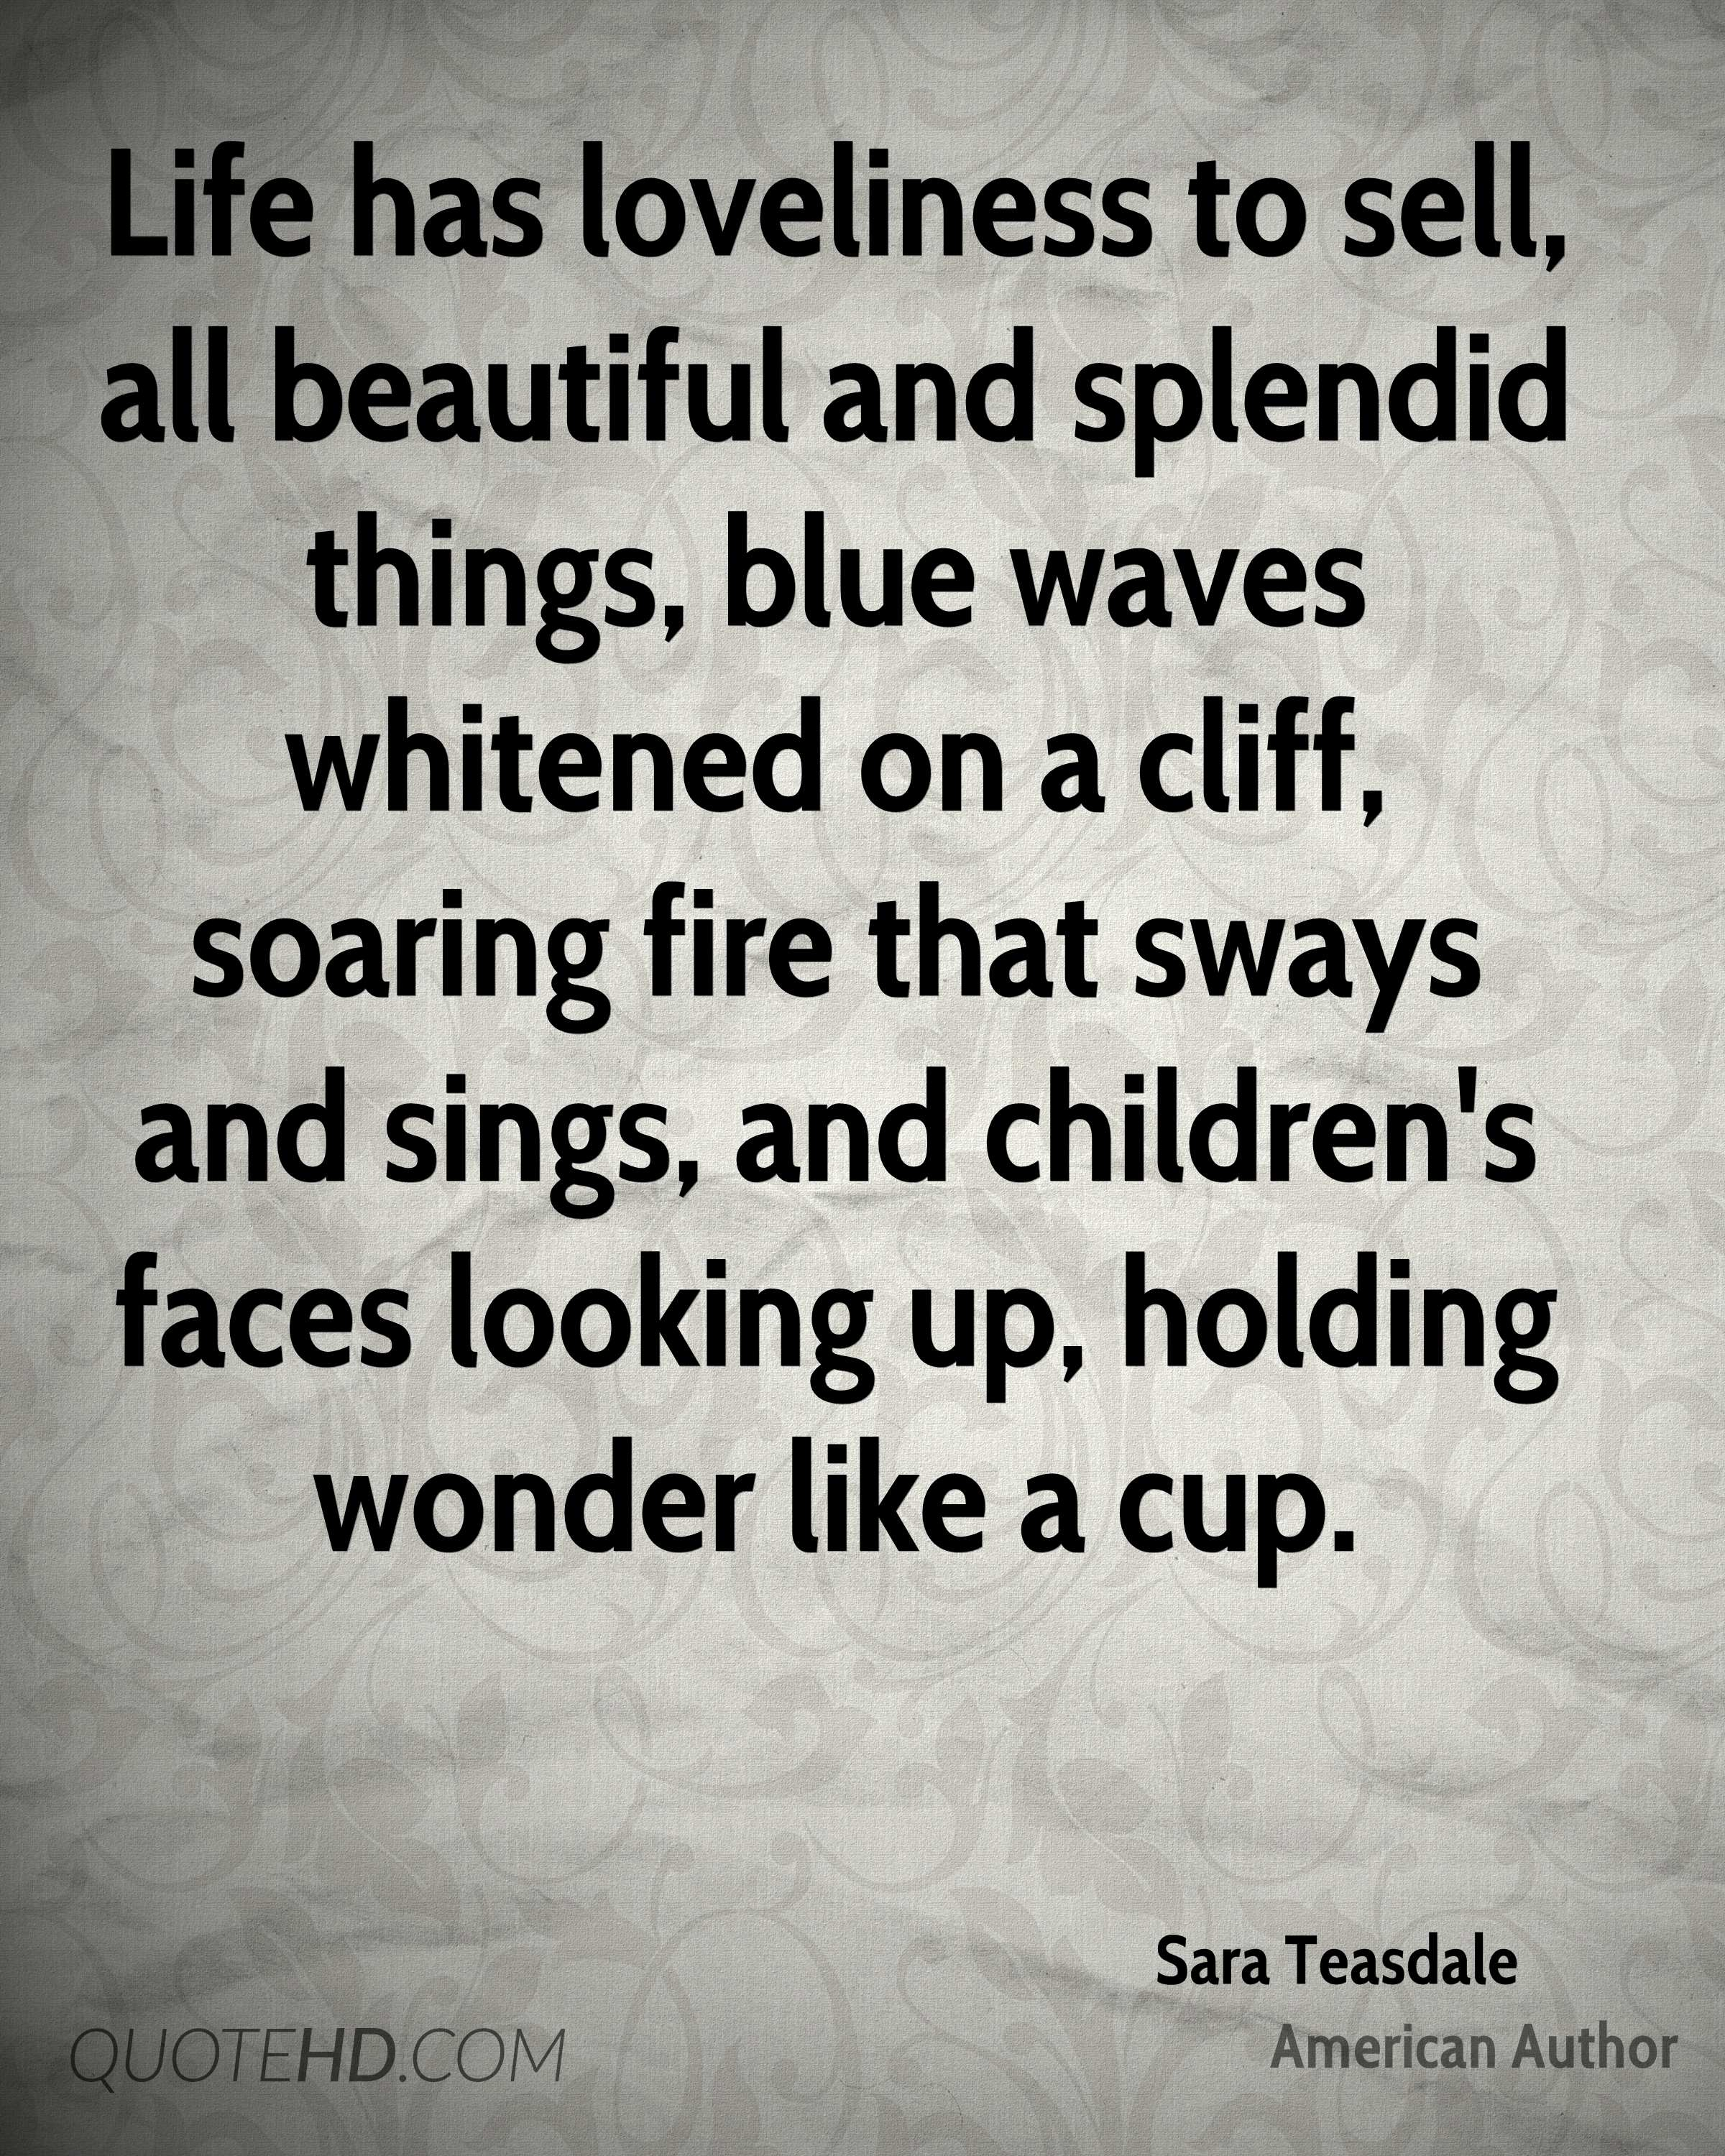 Life has loveliness to sell, all beautiful and splendid things, blue waves whitened on a cliff, soaring fire that sways and sings, and children's faces looking up, holding wonder like a cup.